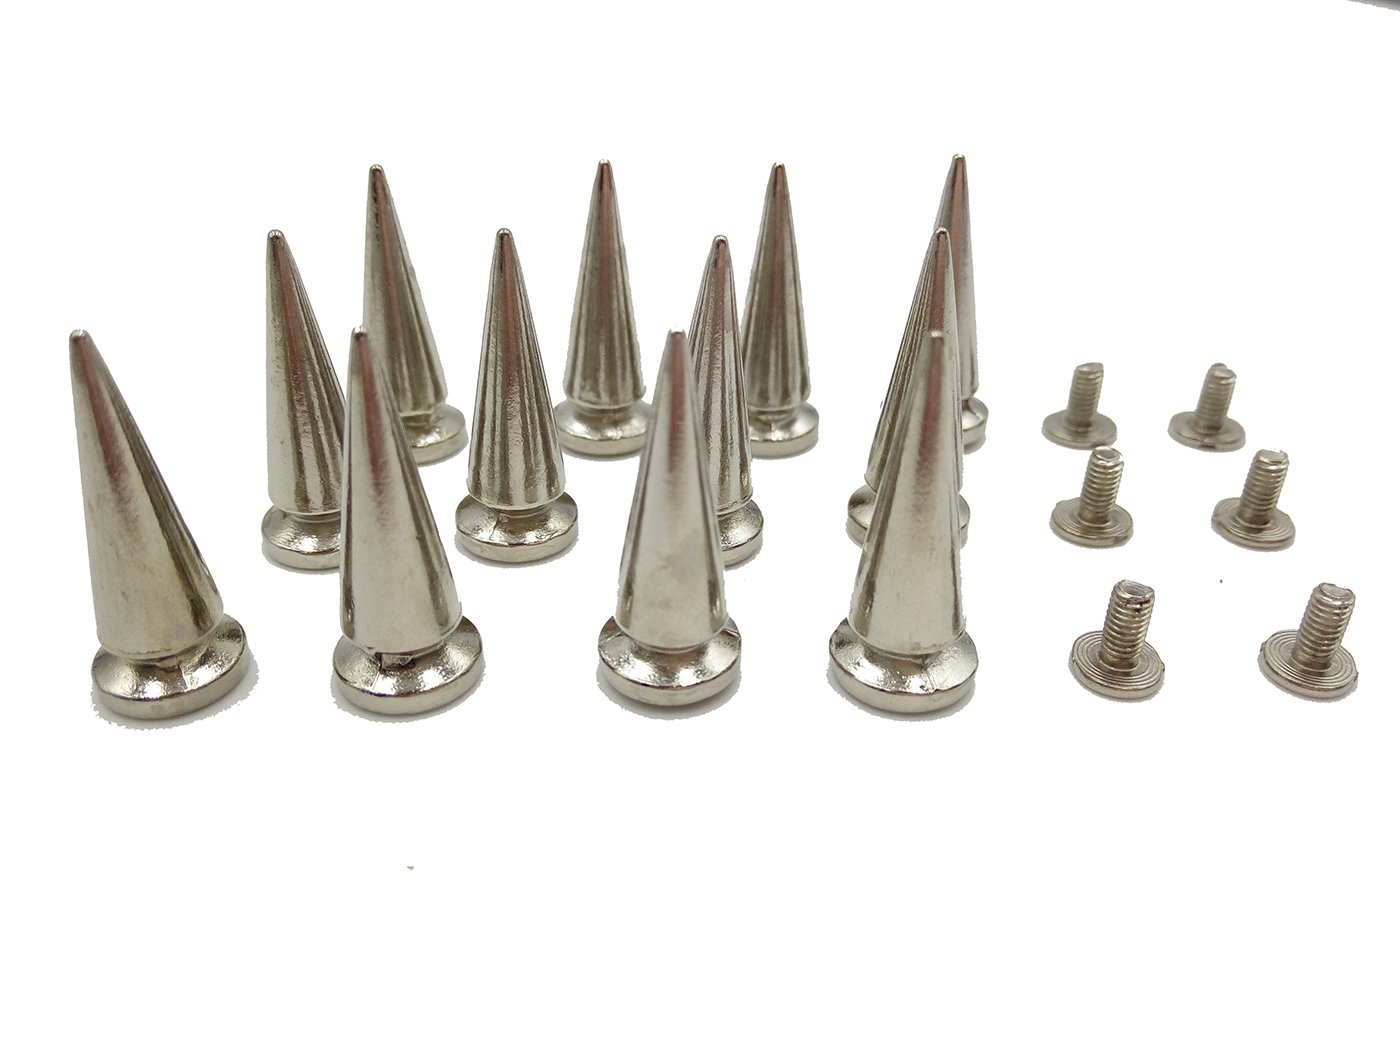 Inton Metal Spike Studs and Spikes Punk Studs for Leathercraft Rivet Bullet Leather Clothing Punk DIY Leather Crafts 20 PCS 25MM, Silvery